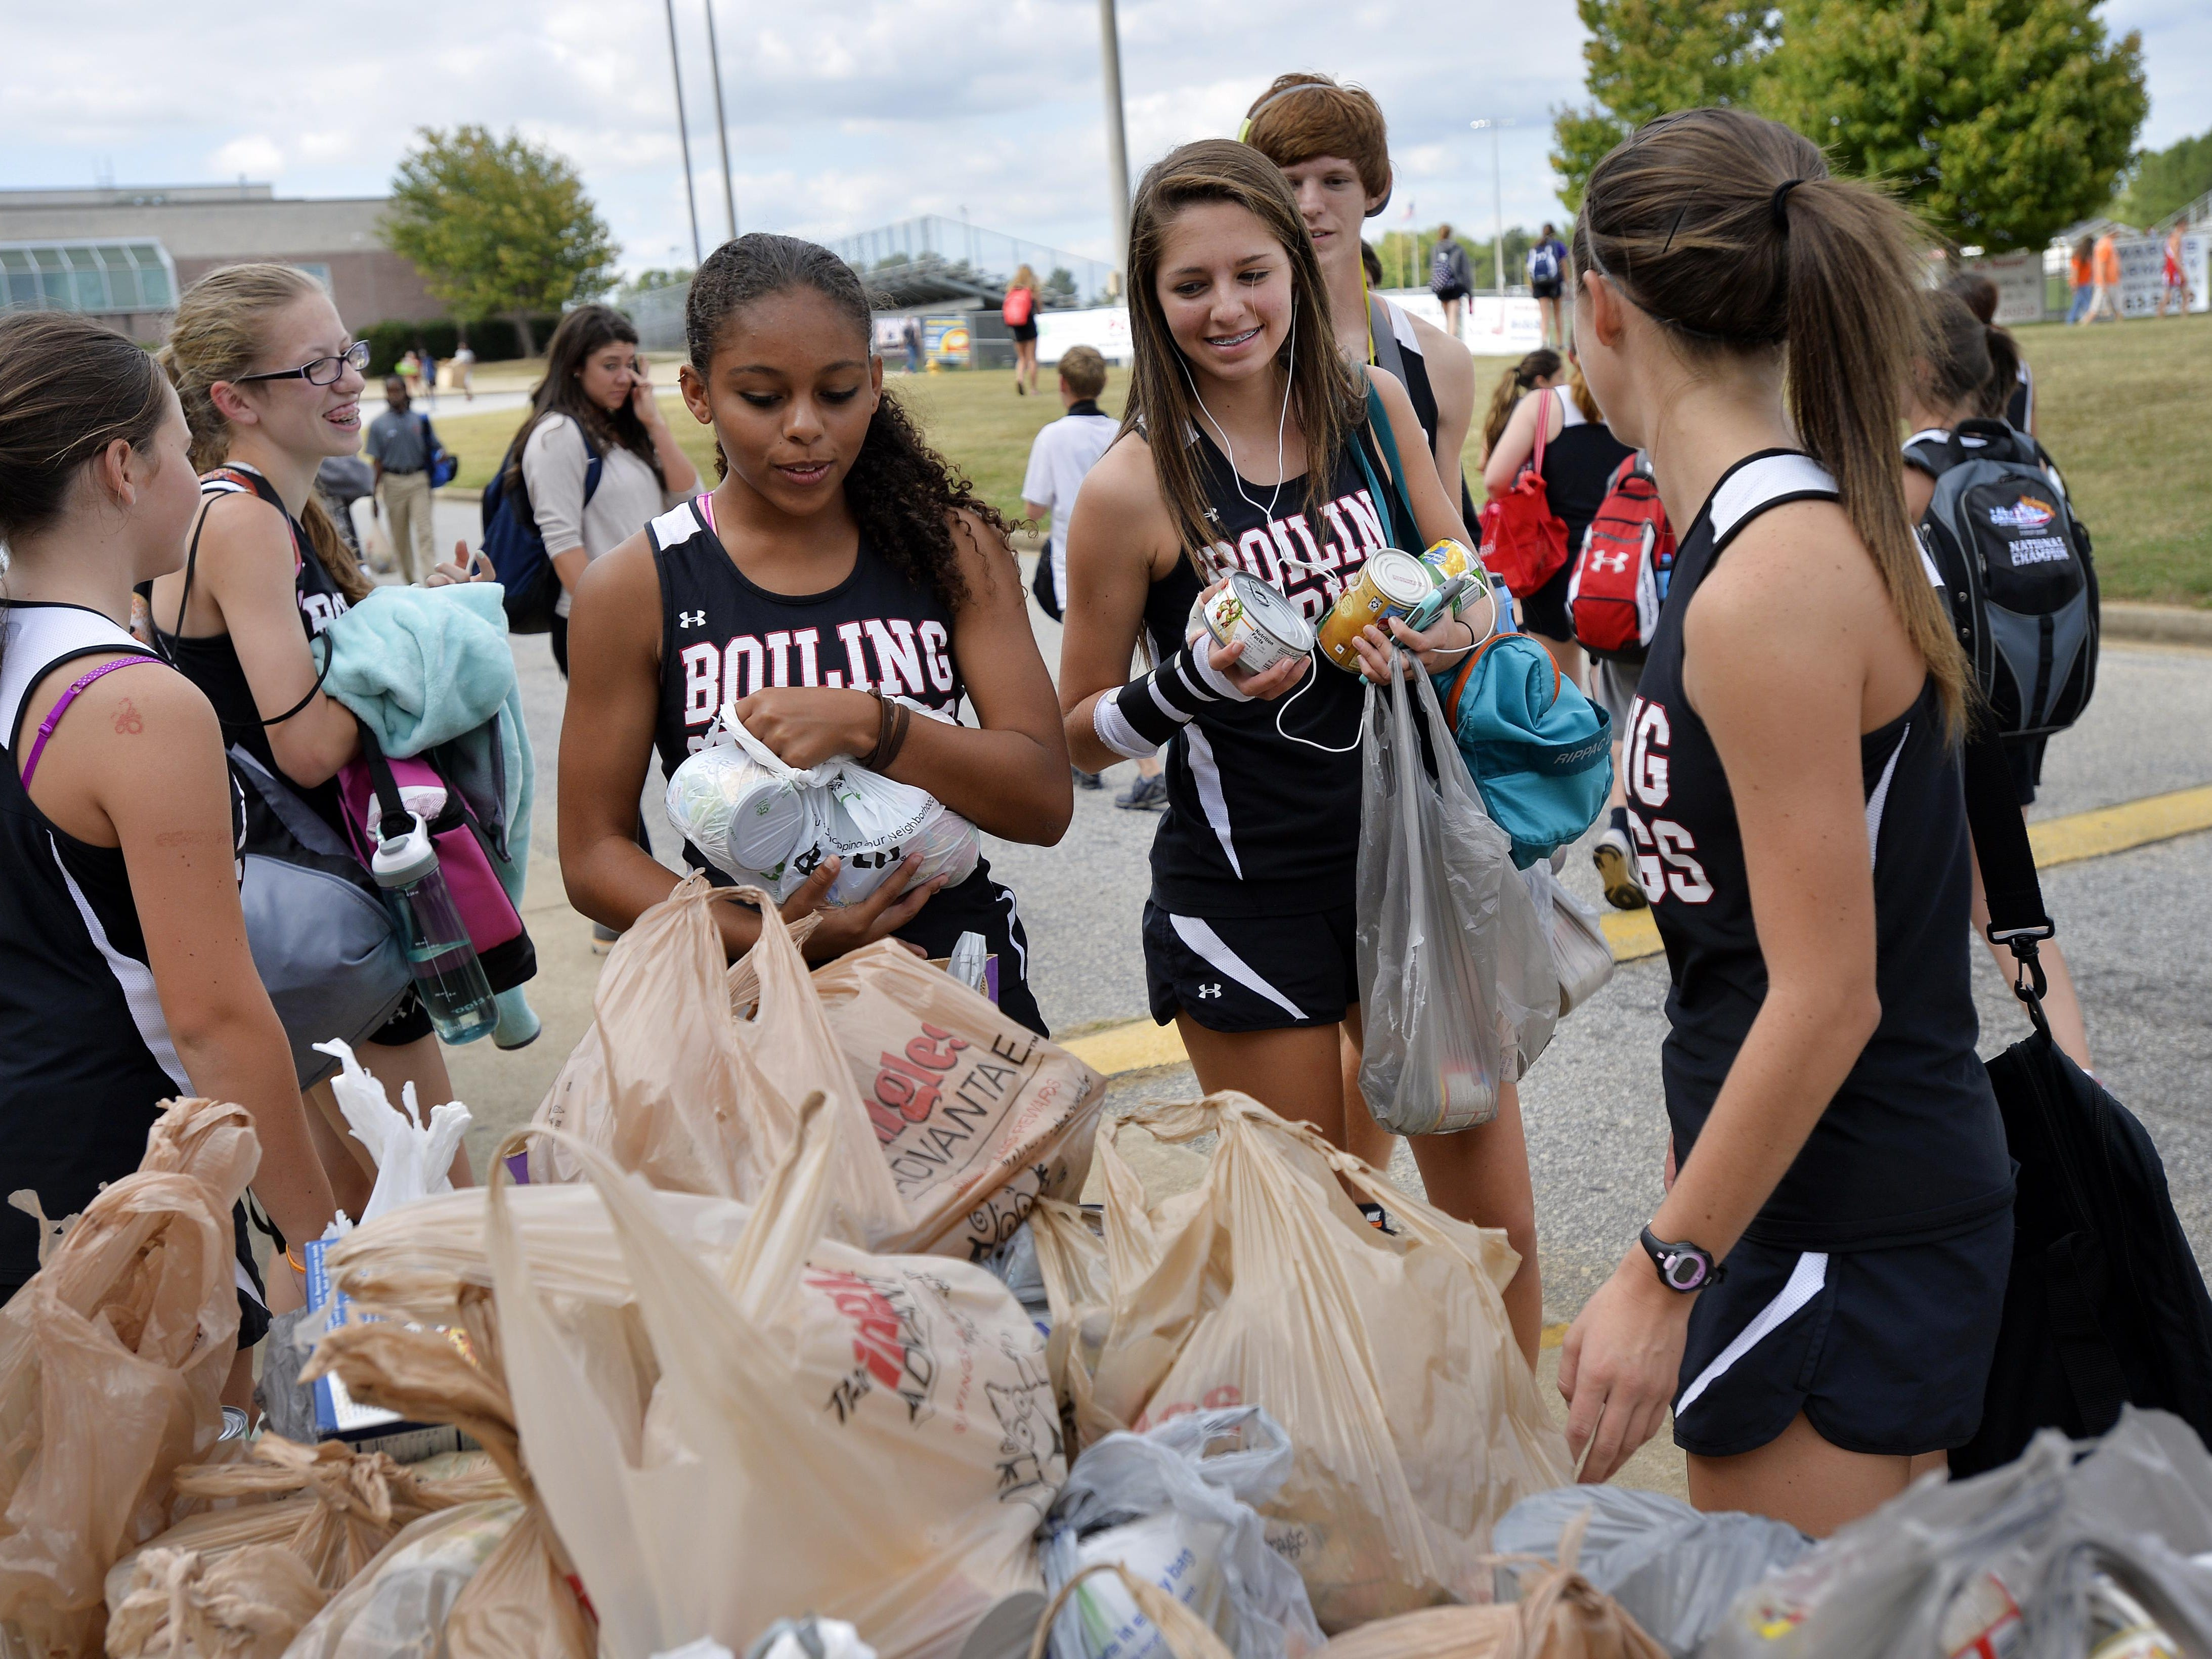 Area high school runners participate in the Canned Food 5k cross country race at Hillcrest High School on Wednesday, September 23, 2015.